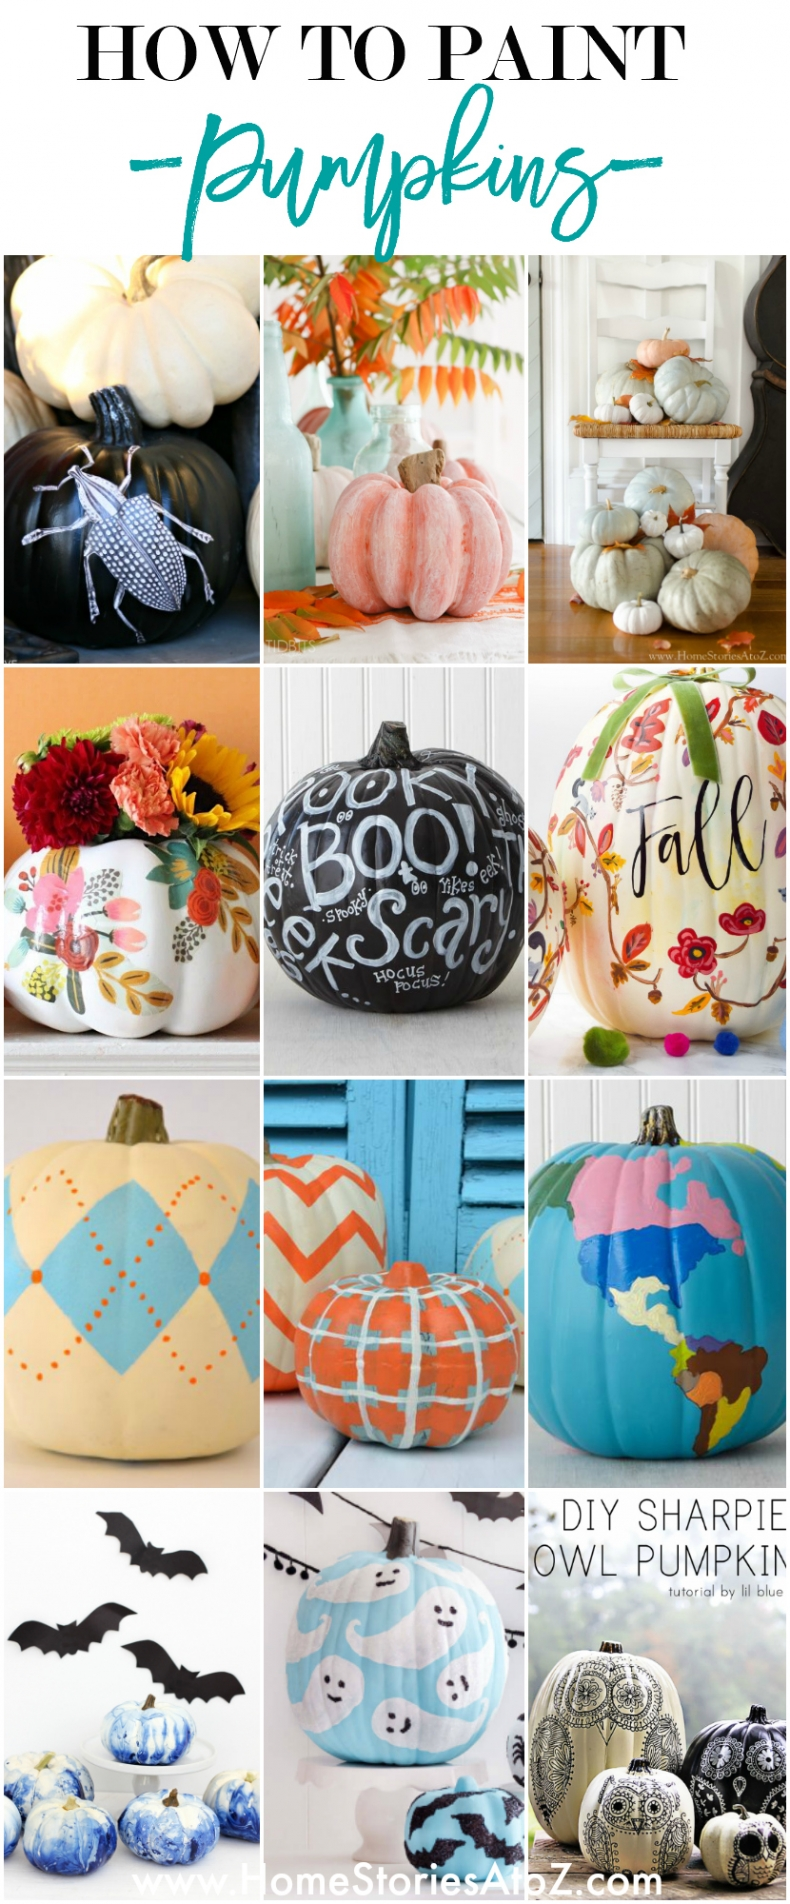 How to Paint Pumpkins - DIY Pumpkin Painting Ideas